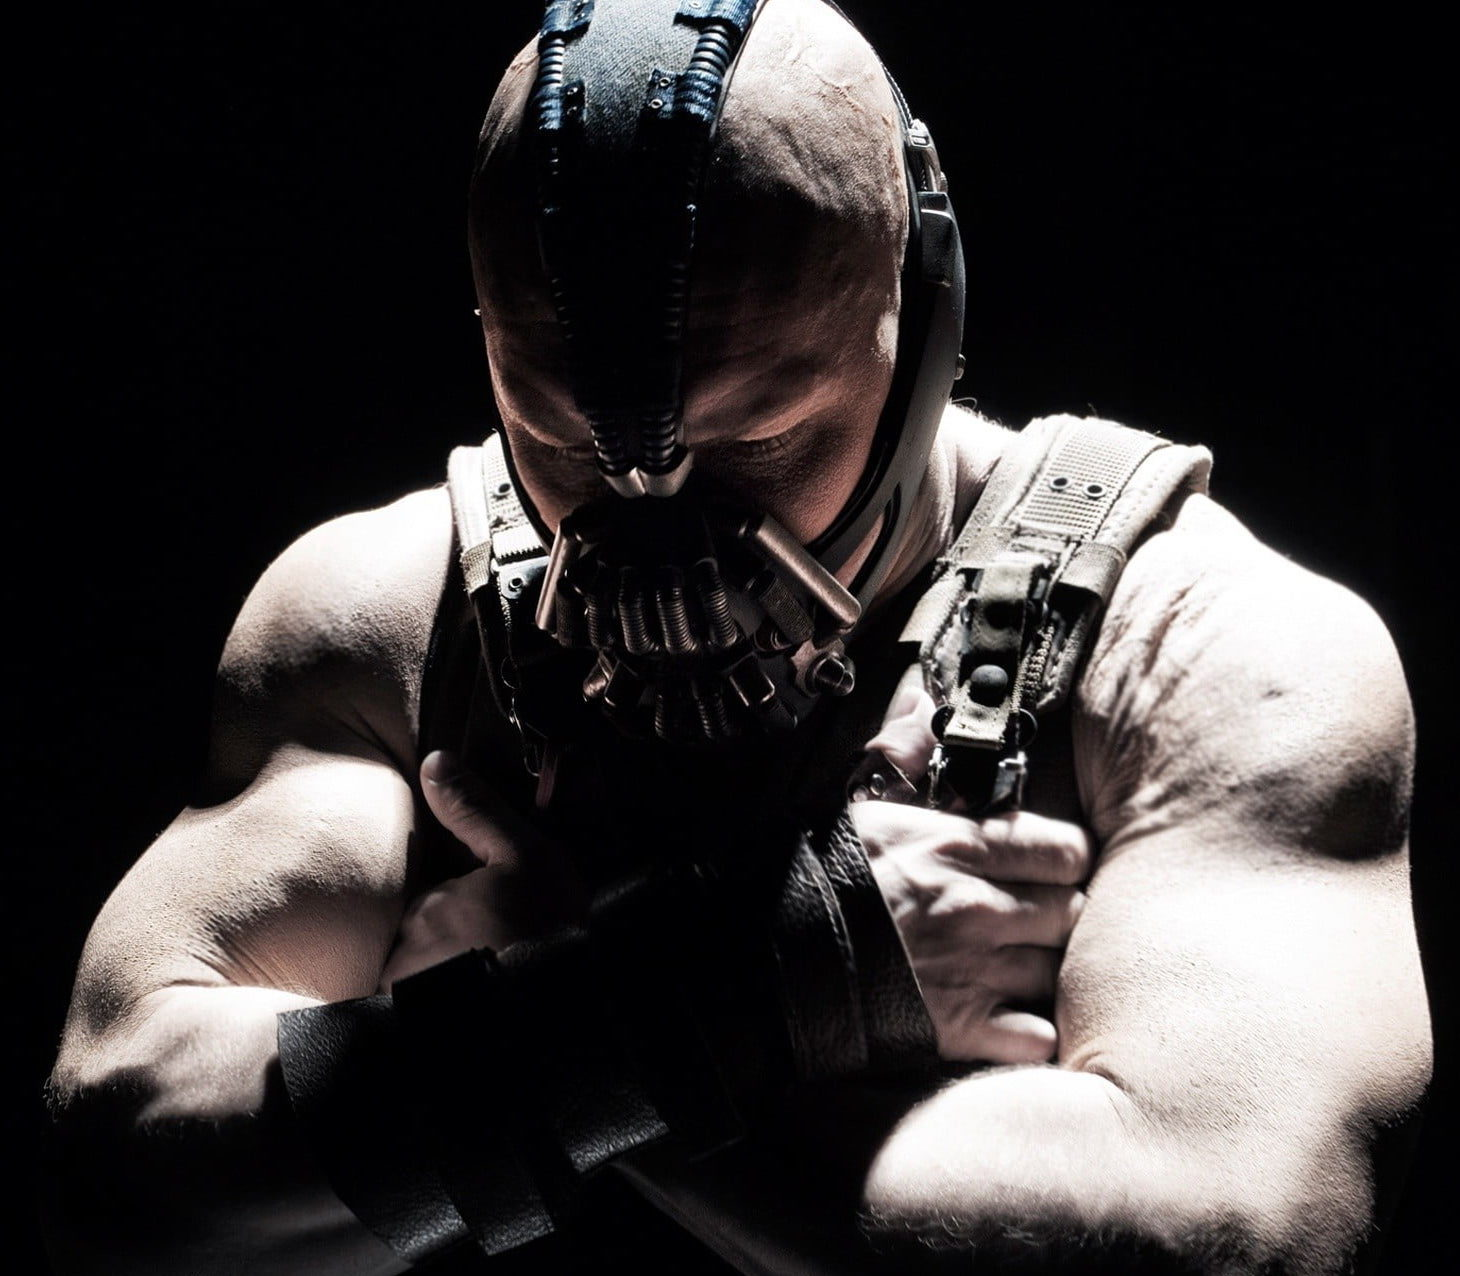 bane tom hardy the dark knight rises mortal wallpaper e1611658599575 40 Things You Didn't Know About Tom Hardy